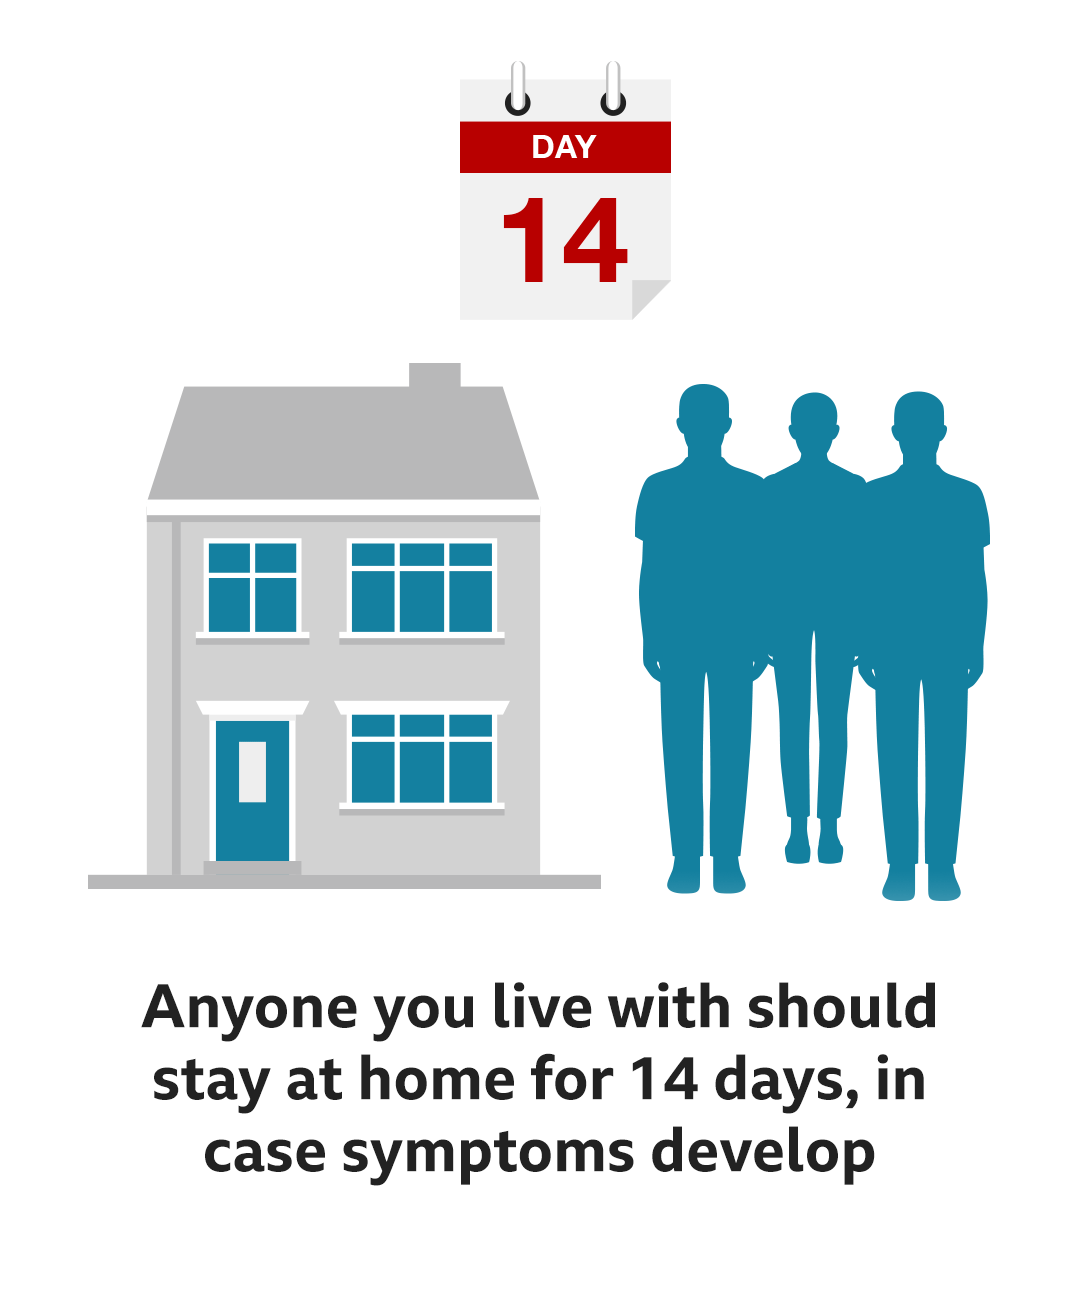 Anyone you live with should stay at home for 14 days